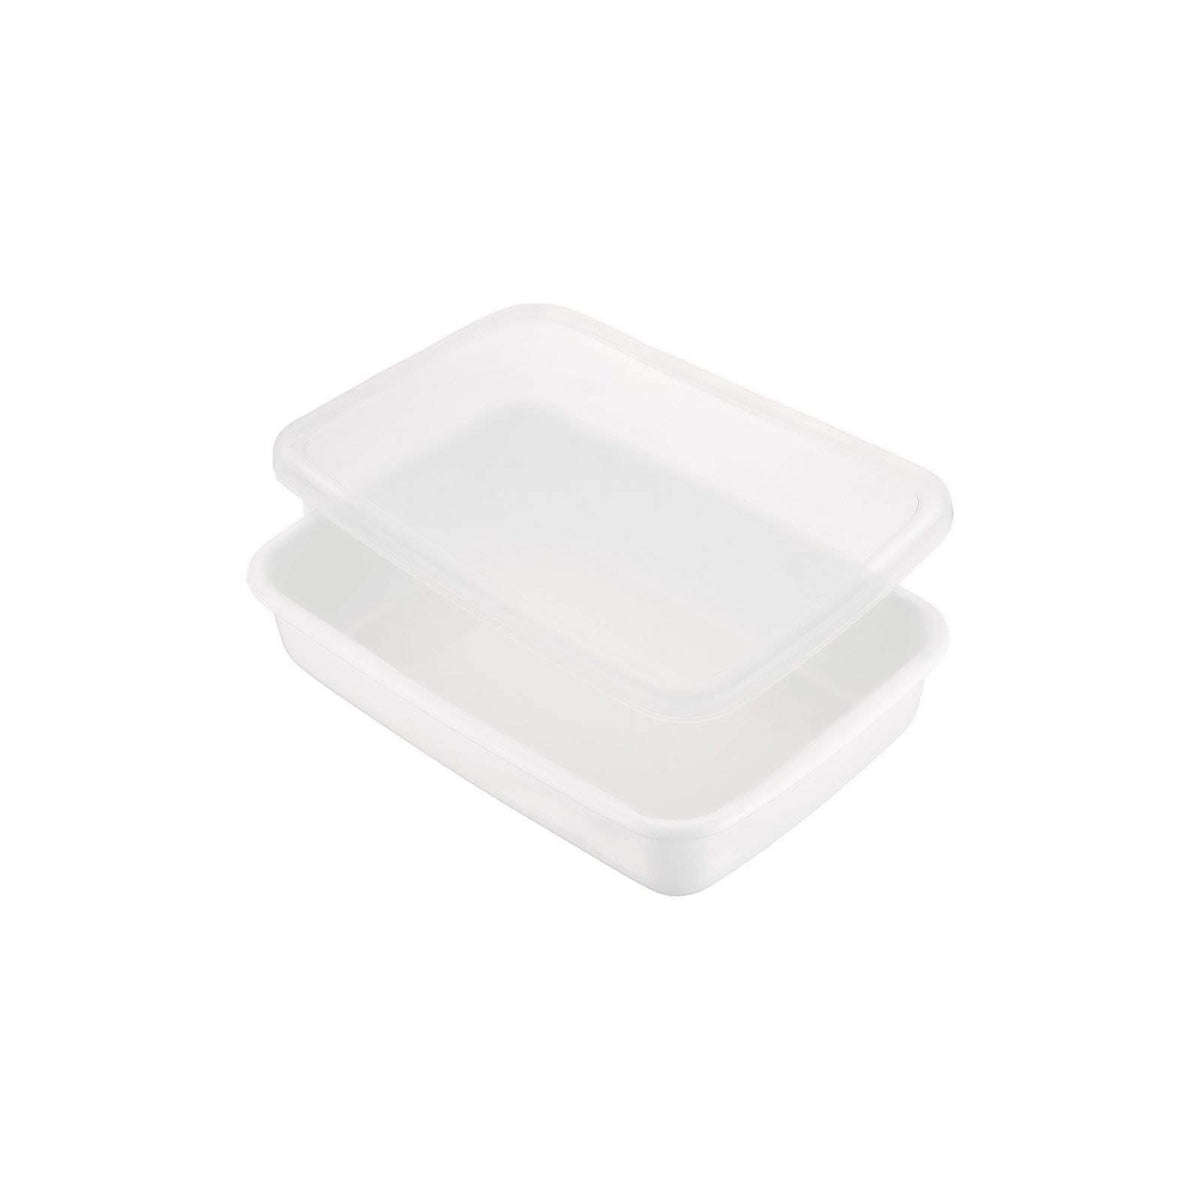 Noda Horo White Series Enamel Rectangle Shallow Food Containers with Lid (3 Sizes) Food Containers